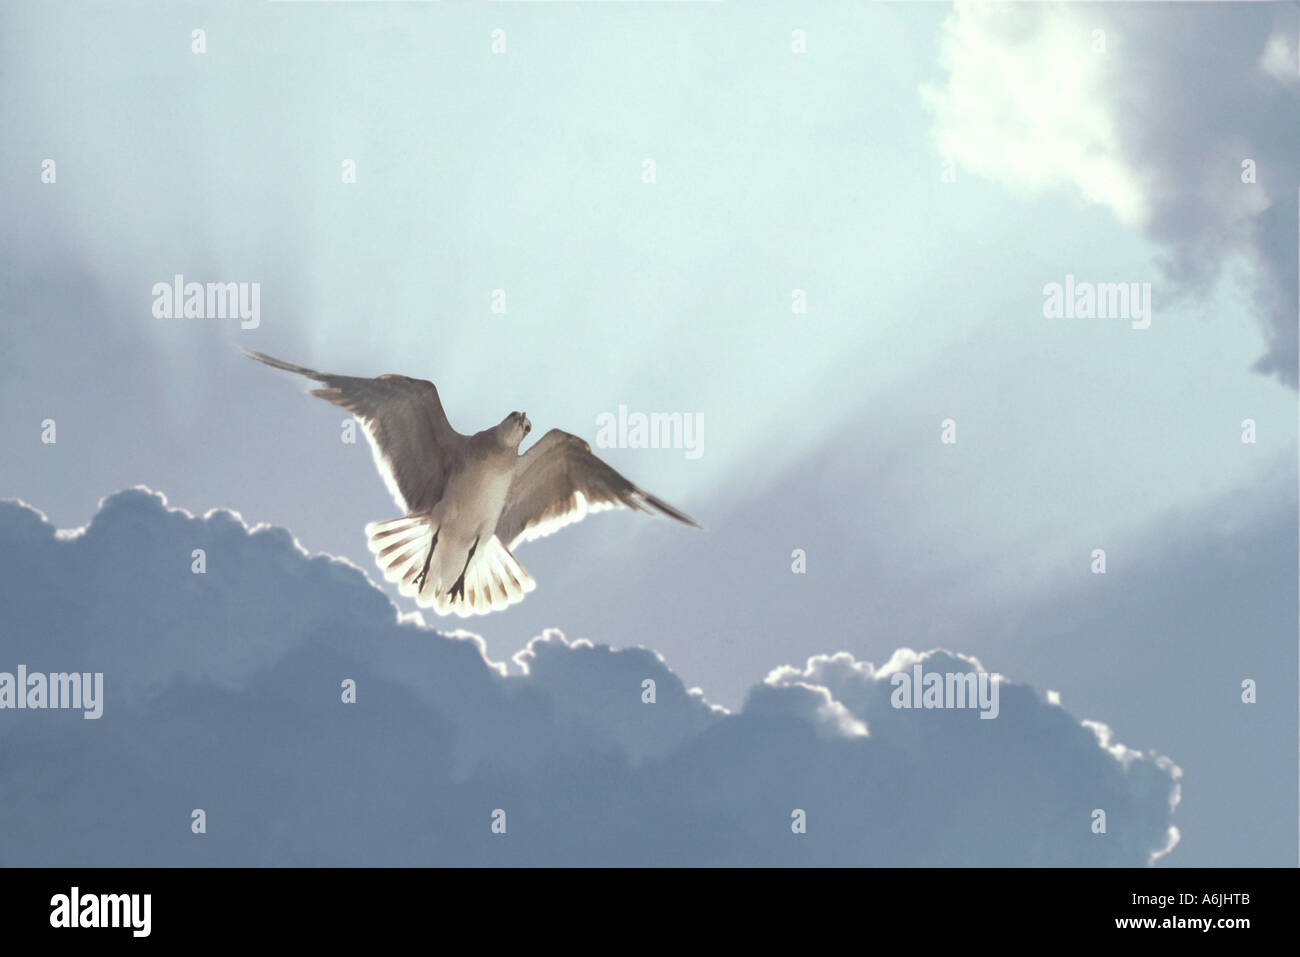 Gull hovering in sky with sun rays and clouds behind - Stock Image